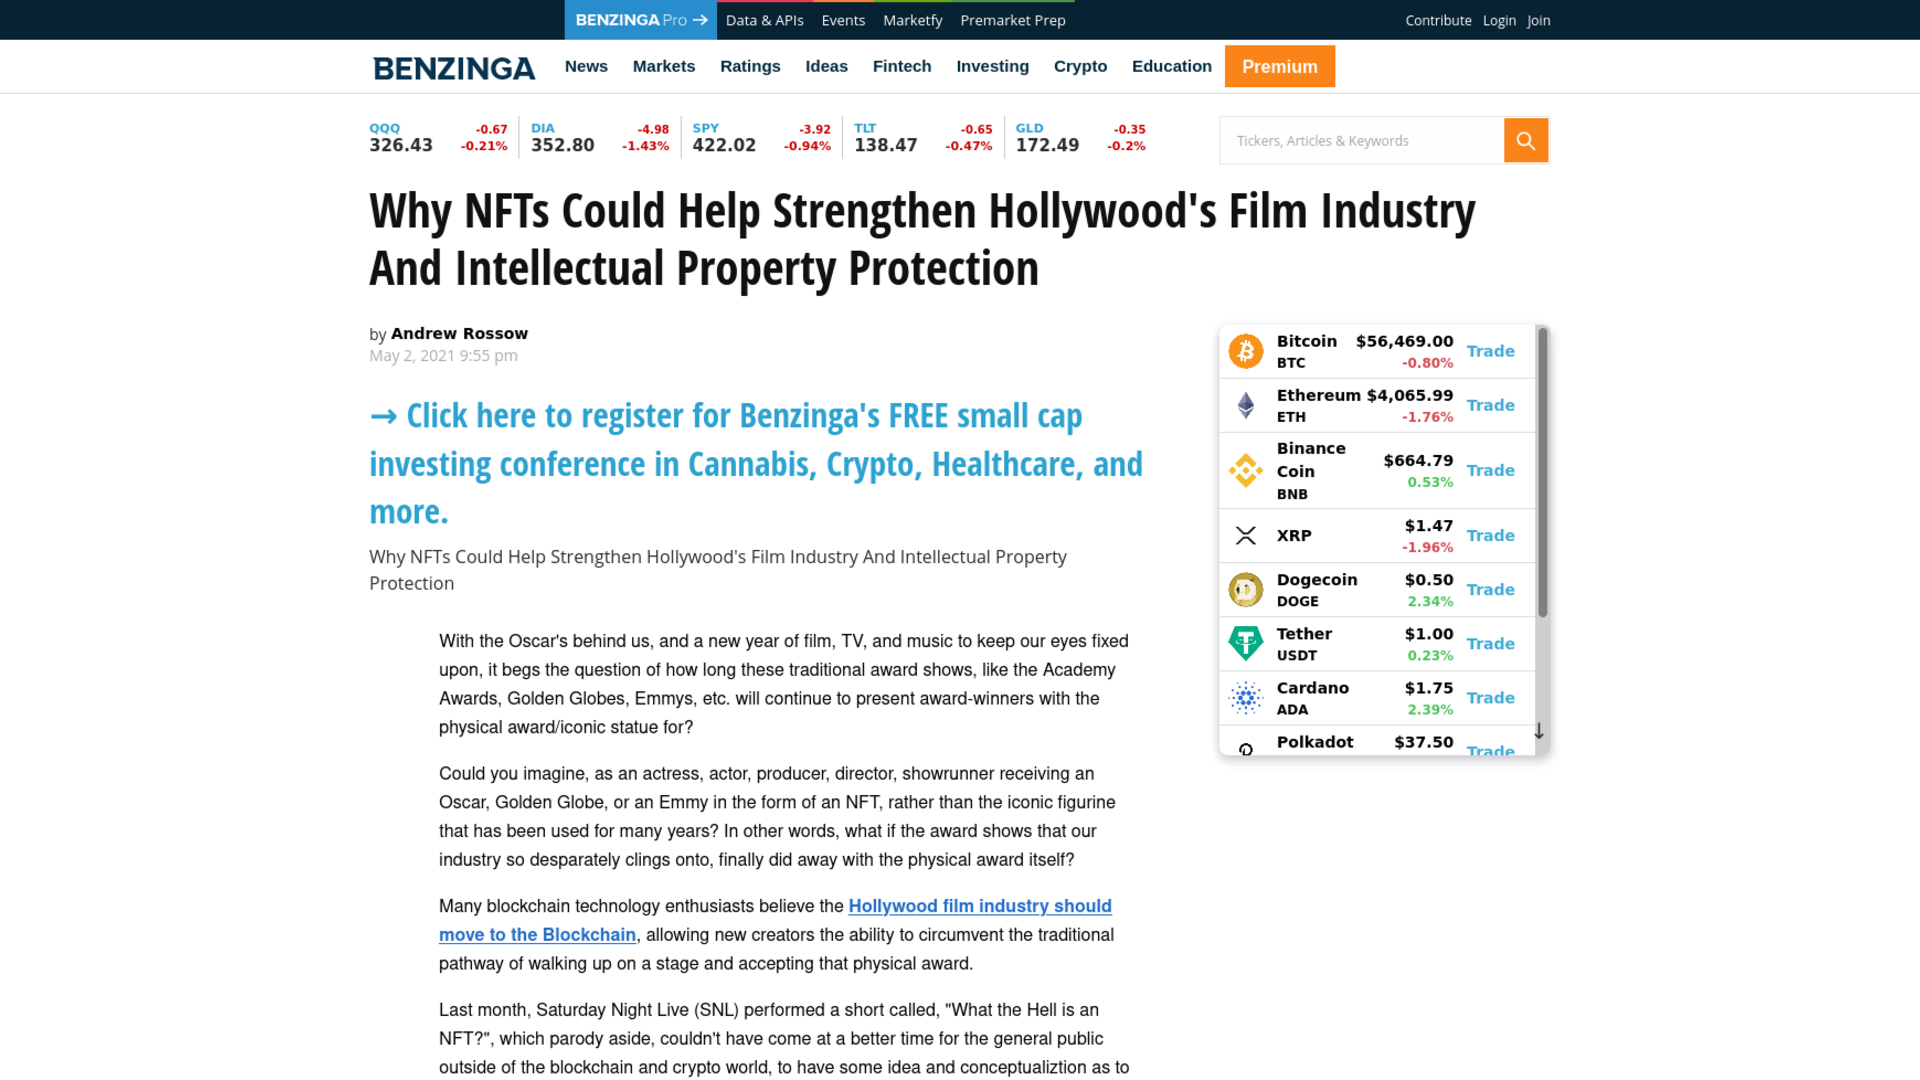 Fairness Rocks News Why NFTs Could Help Strengthen Hollywood's Film Industry And Intellectual Property Protection